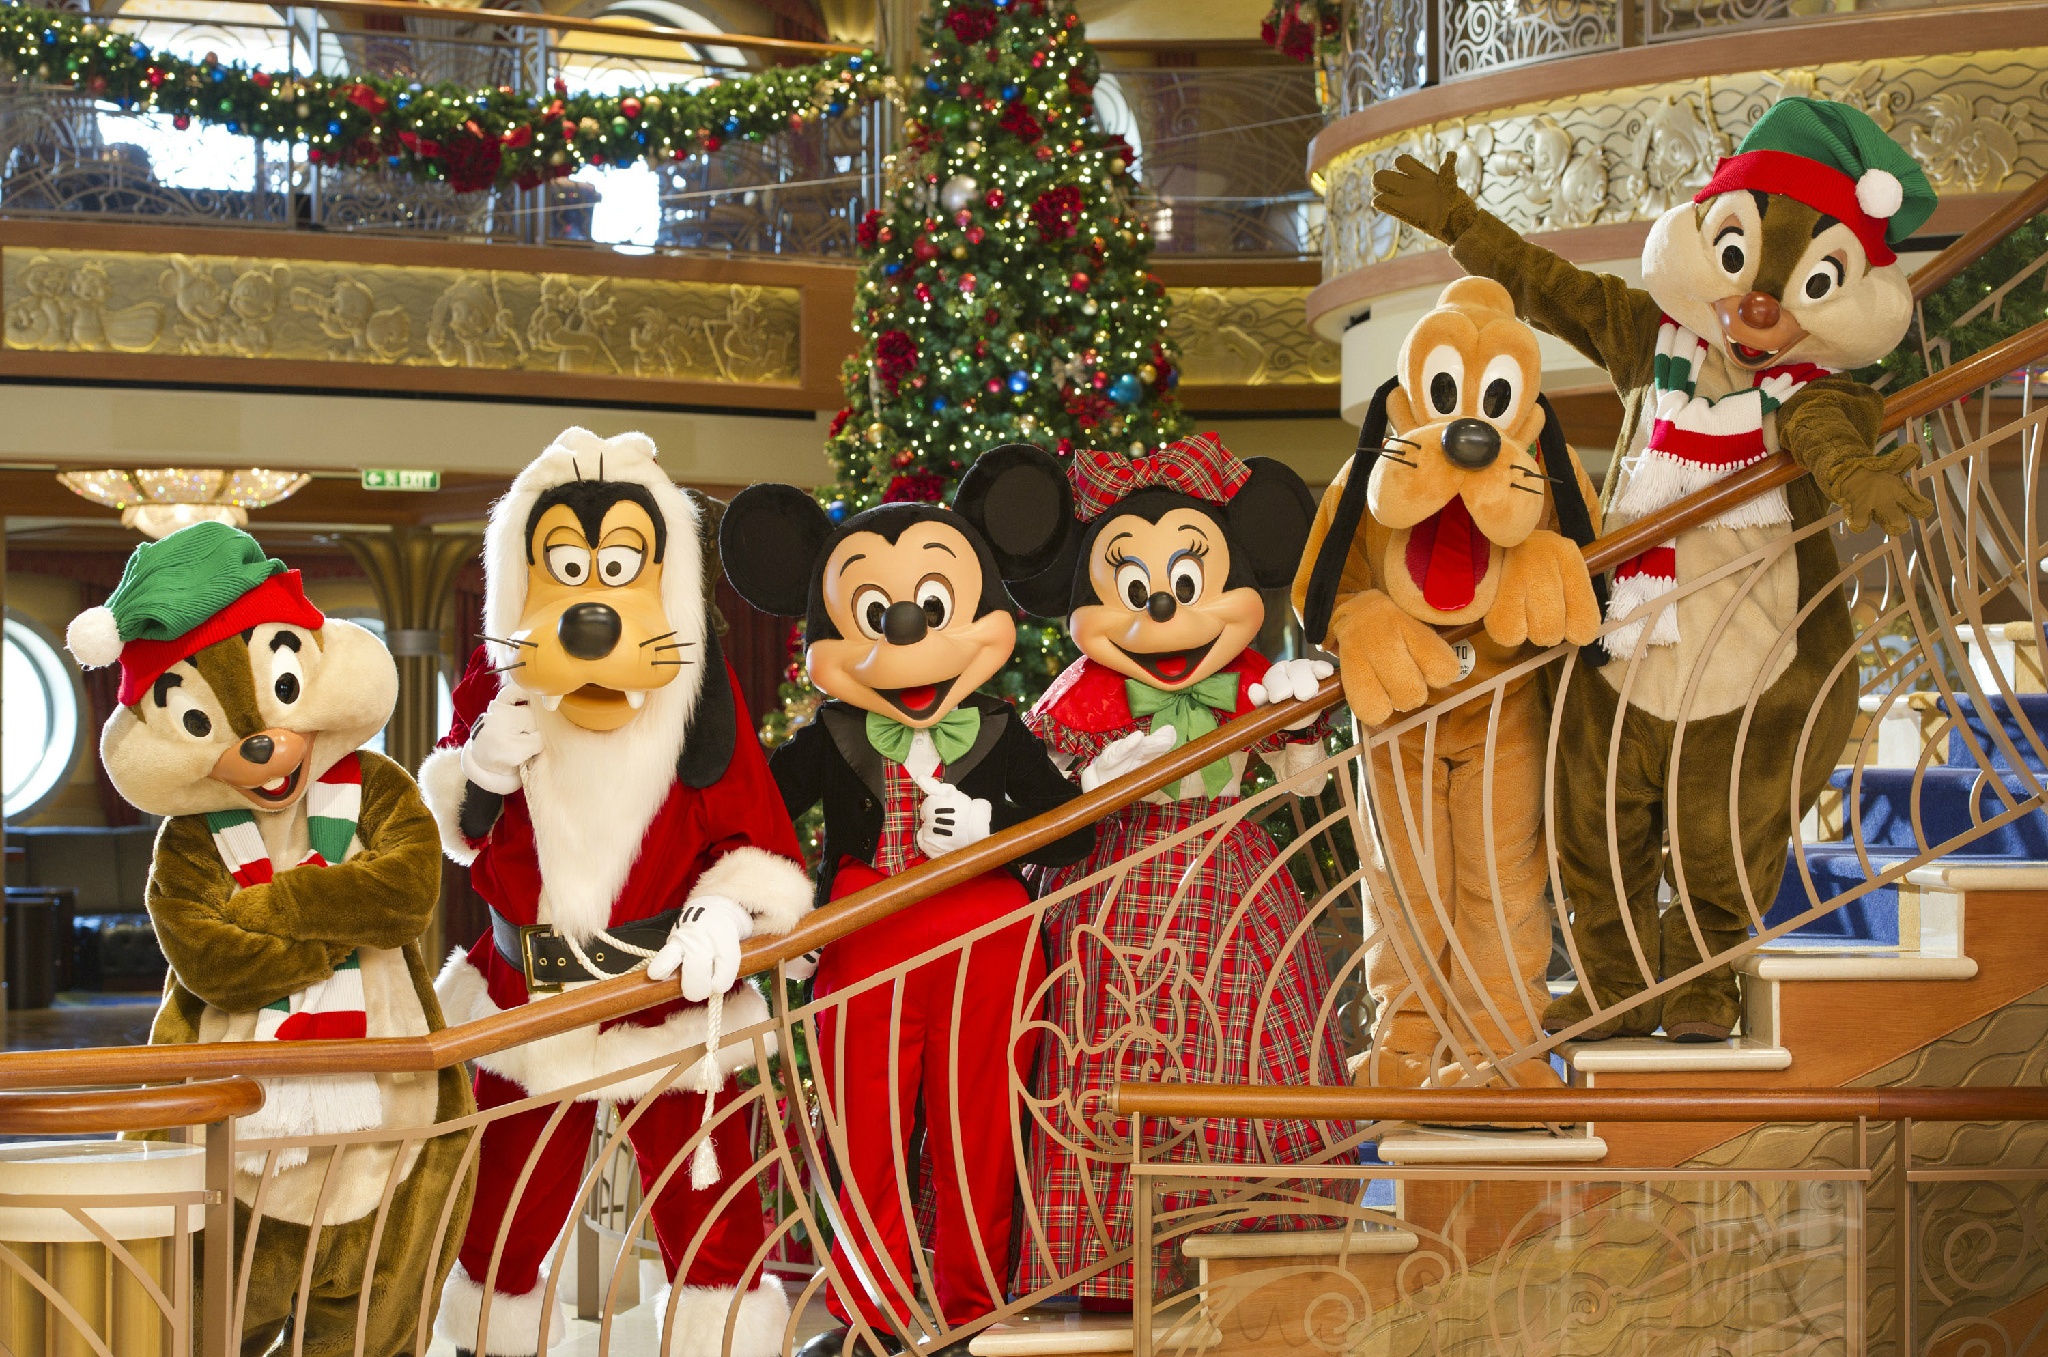 RT @DisneyCruise: See how festive #Disney characters are on a #DisneyCruise ship during the holiday season! #FriFotos http://t.co/x0AFhnmb